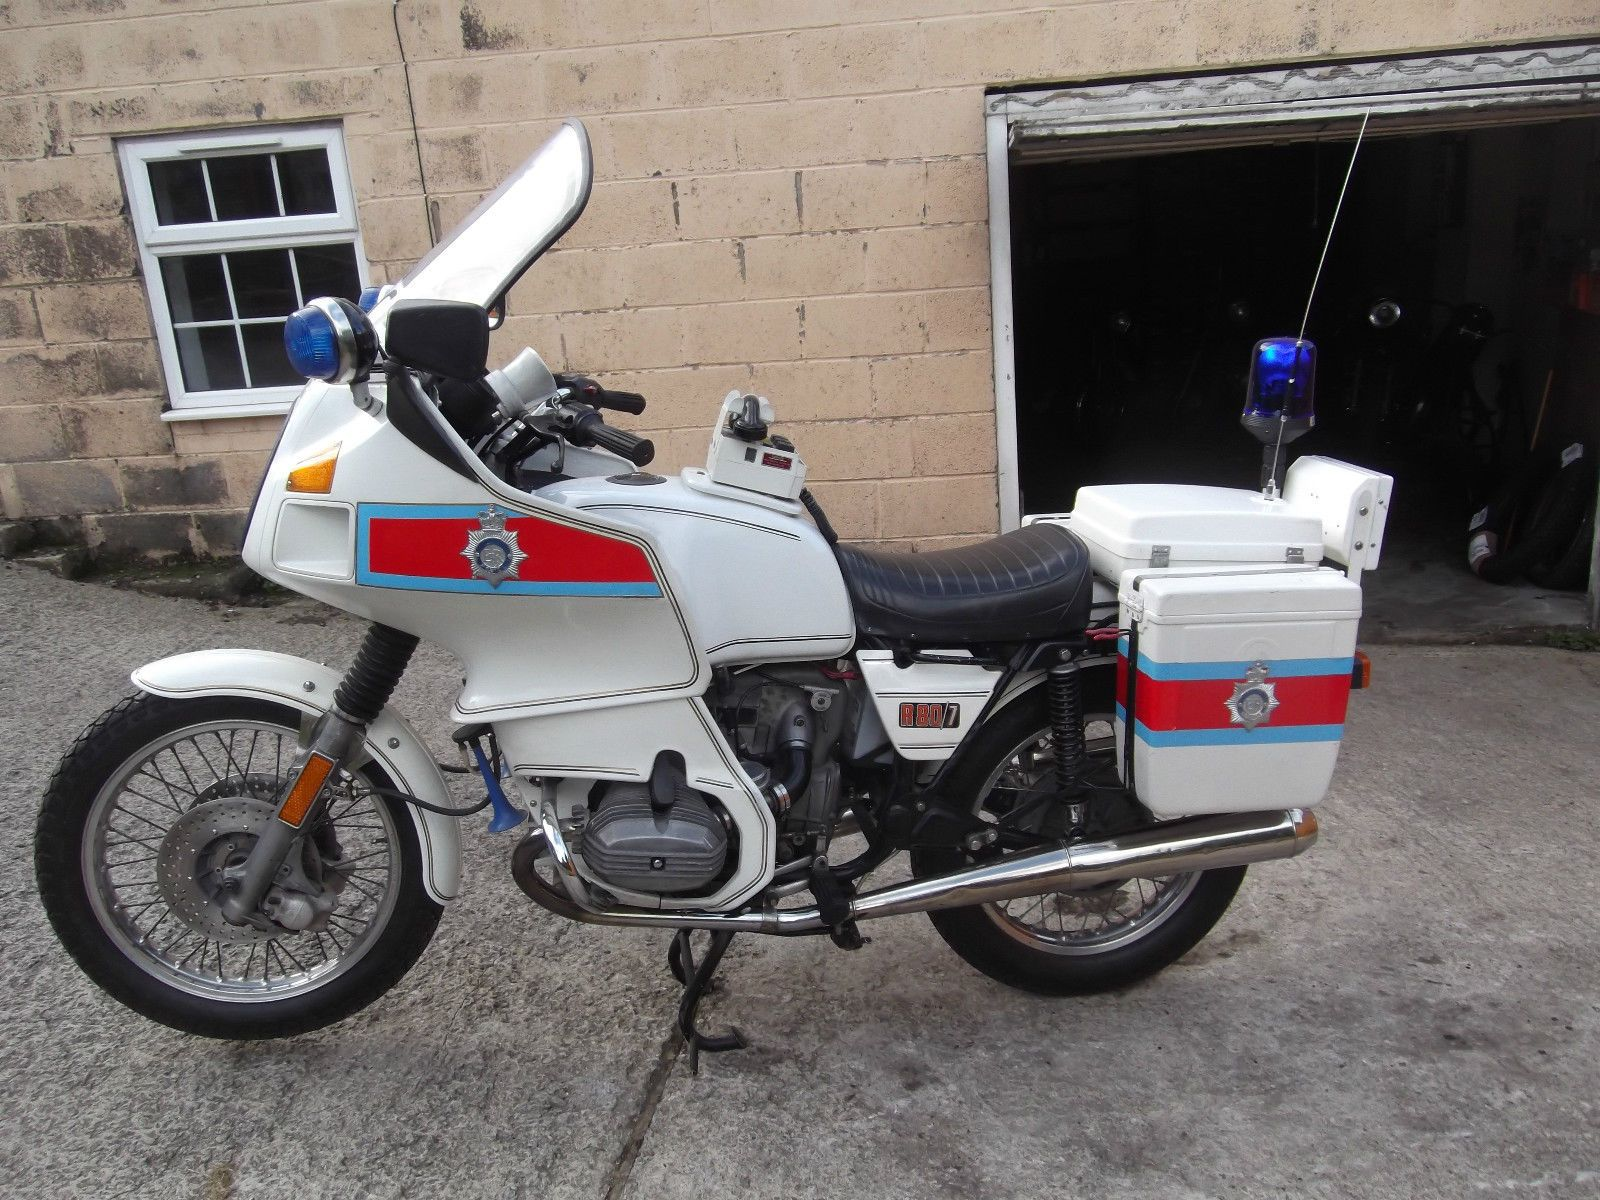 1979 bmw r80 ex-police motorcycle. 800cc. restored, good runner